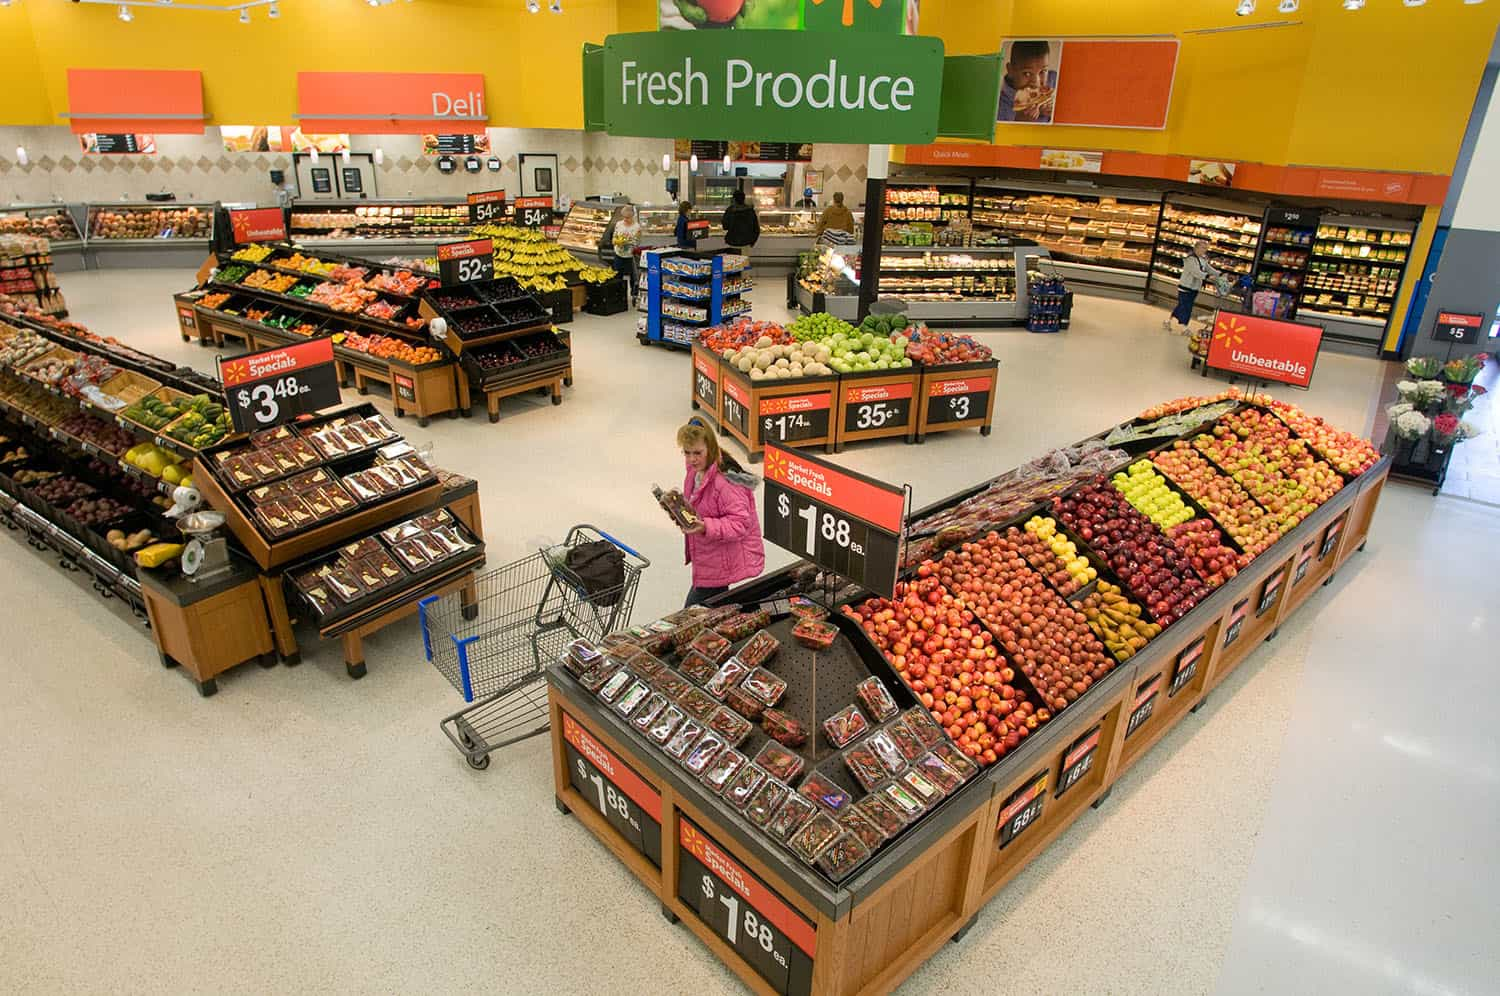 why i like to shop at walmart I don't take shopping at walmart lightly a 200,000-square-foot labyrinth like the supercenter in my hometown of plymouth is no place for a casual browser one wrong turn and you can end up face.